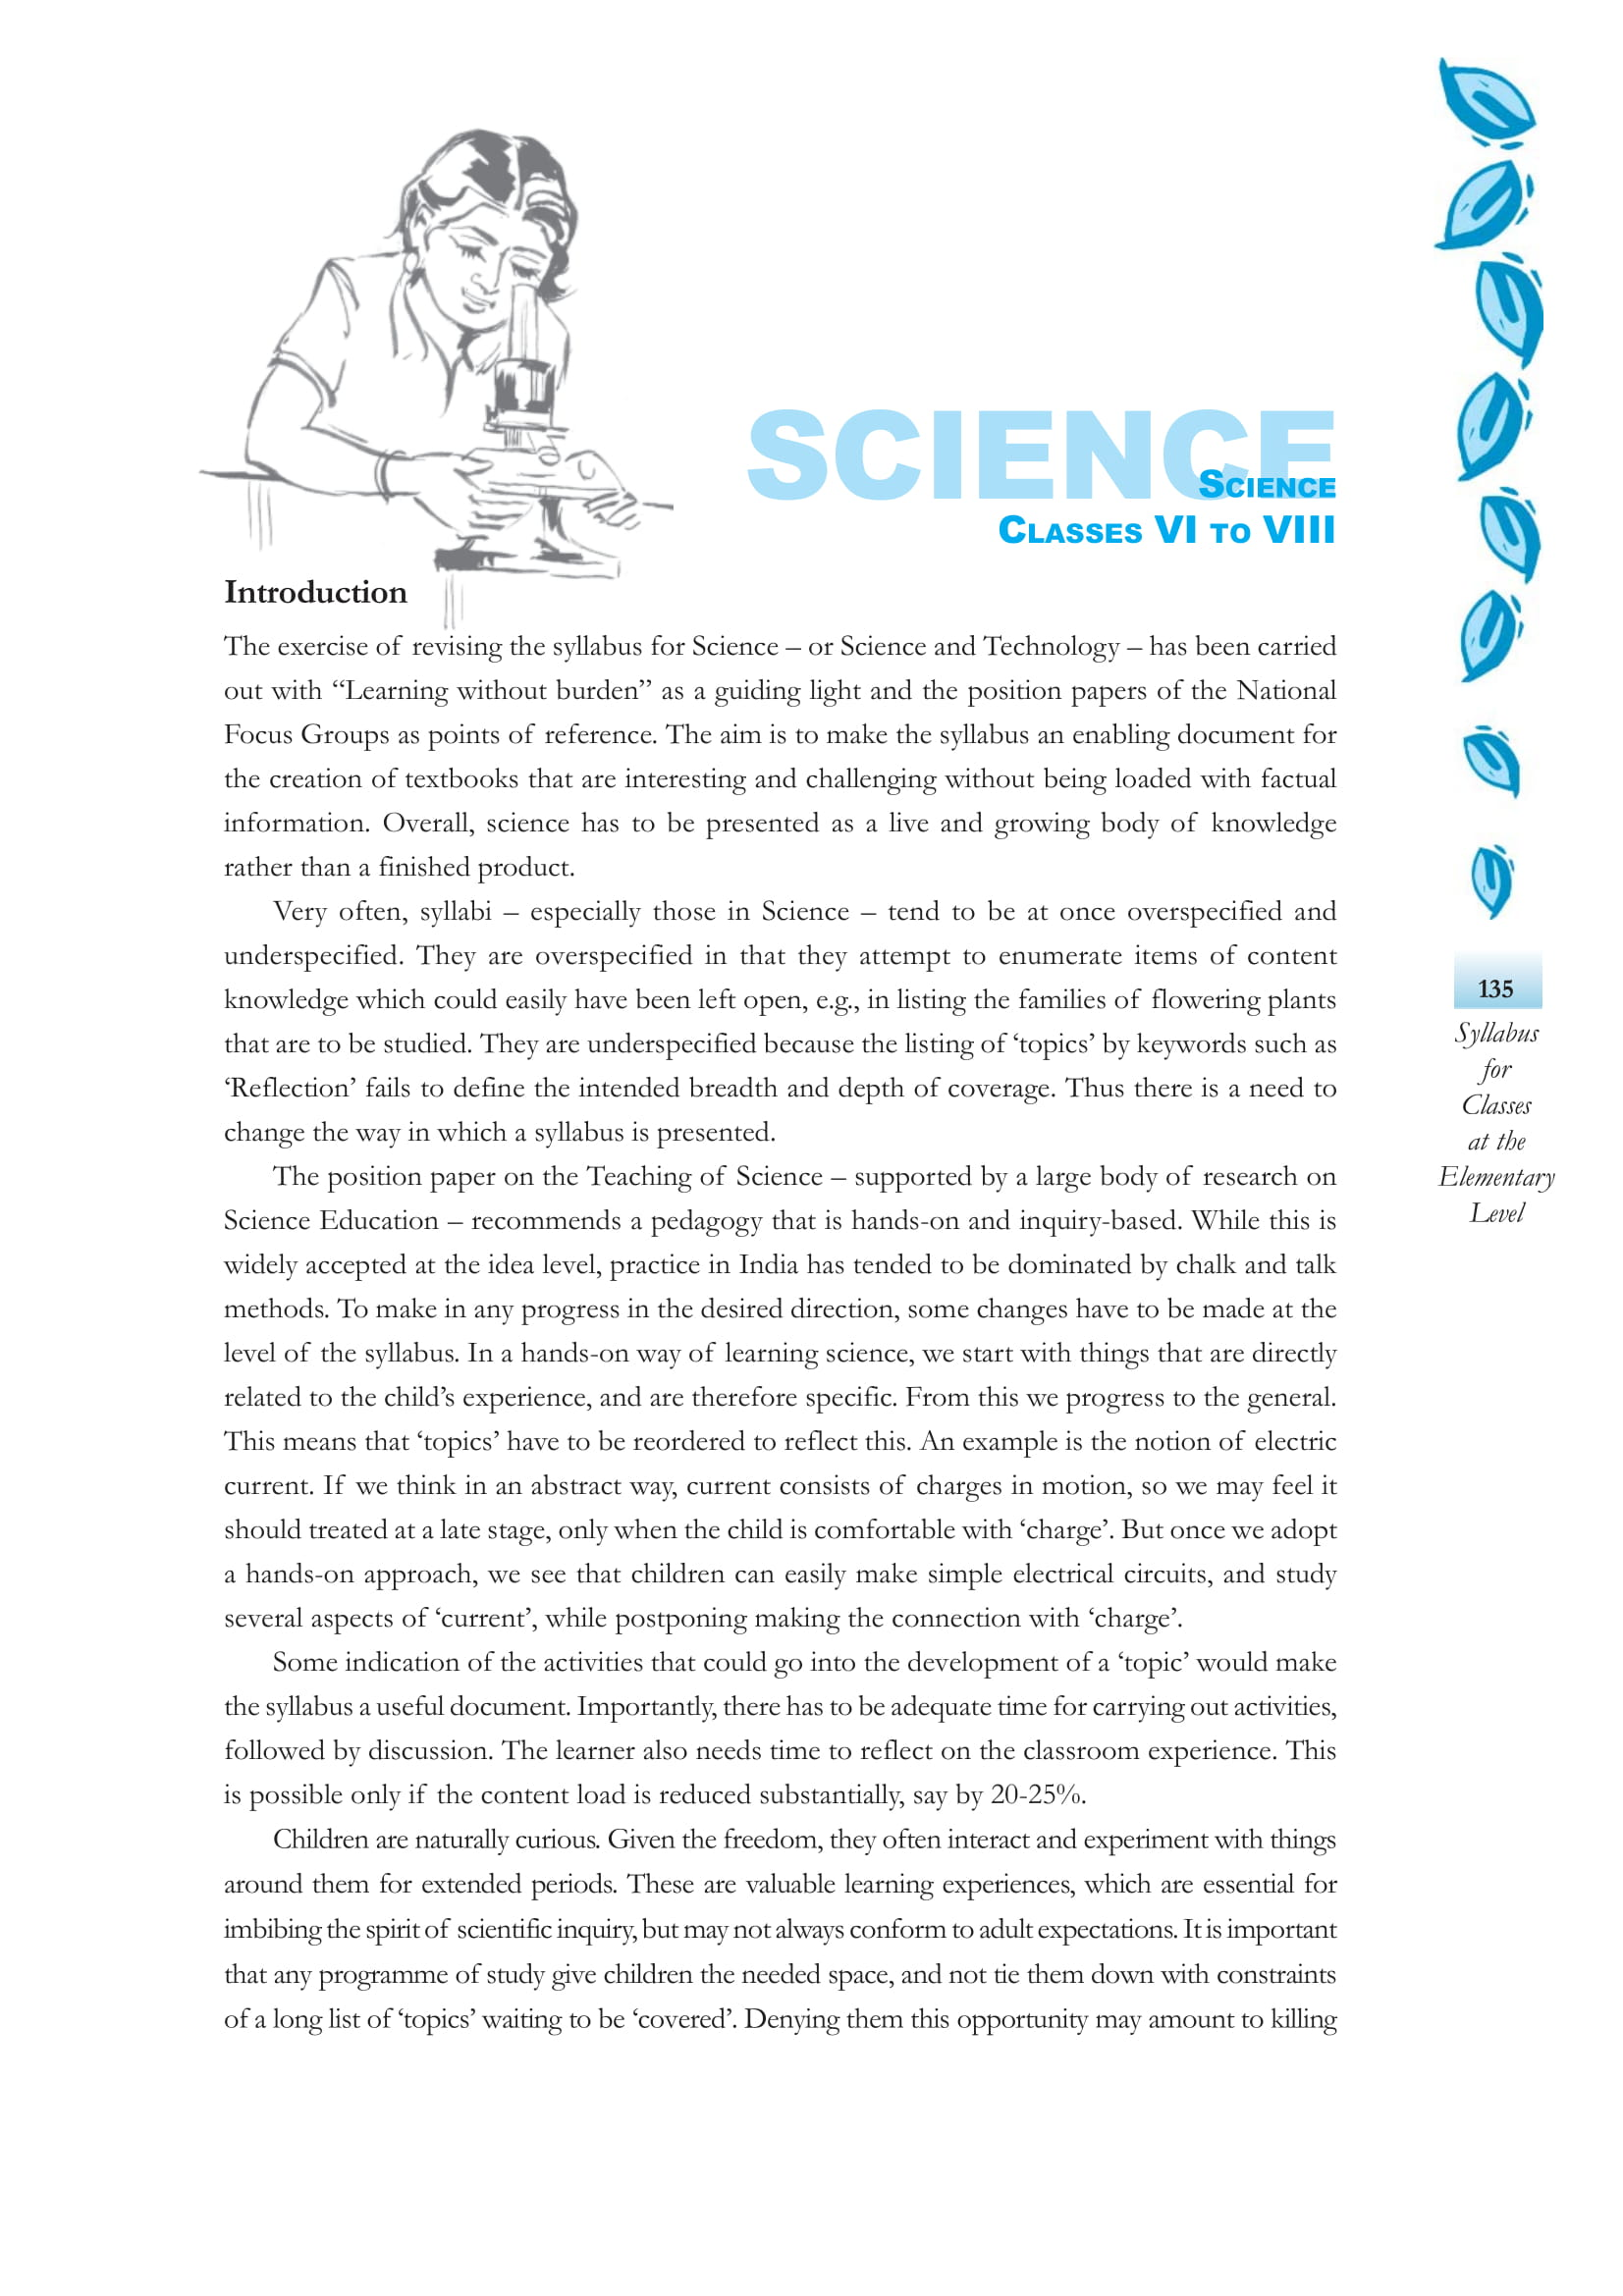 CBSE Syllabus For Science Classes 6, 7, 8 – New NCERT Pattern at Elementary Level